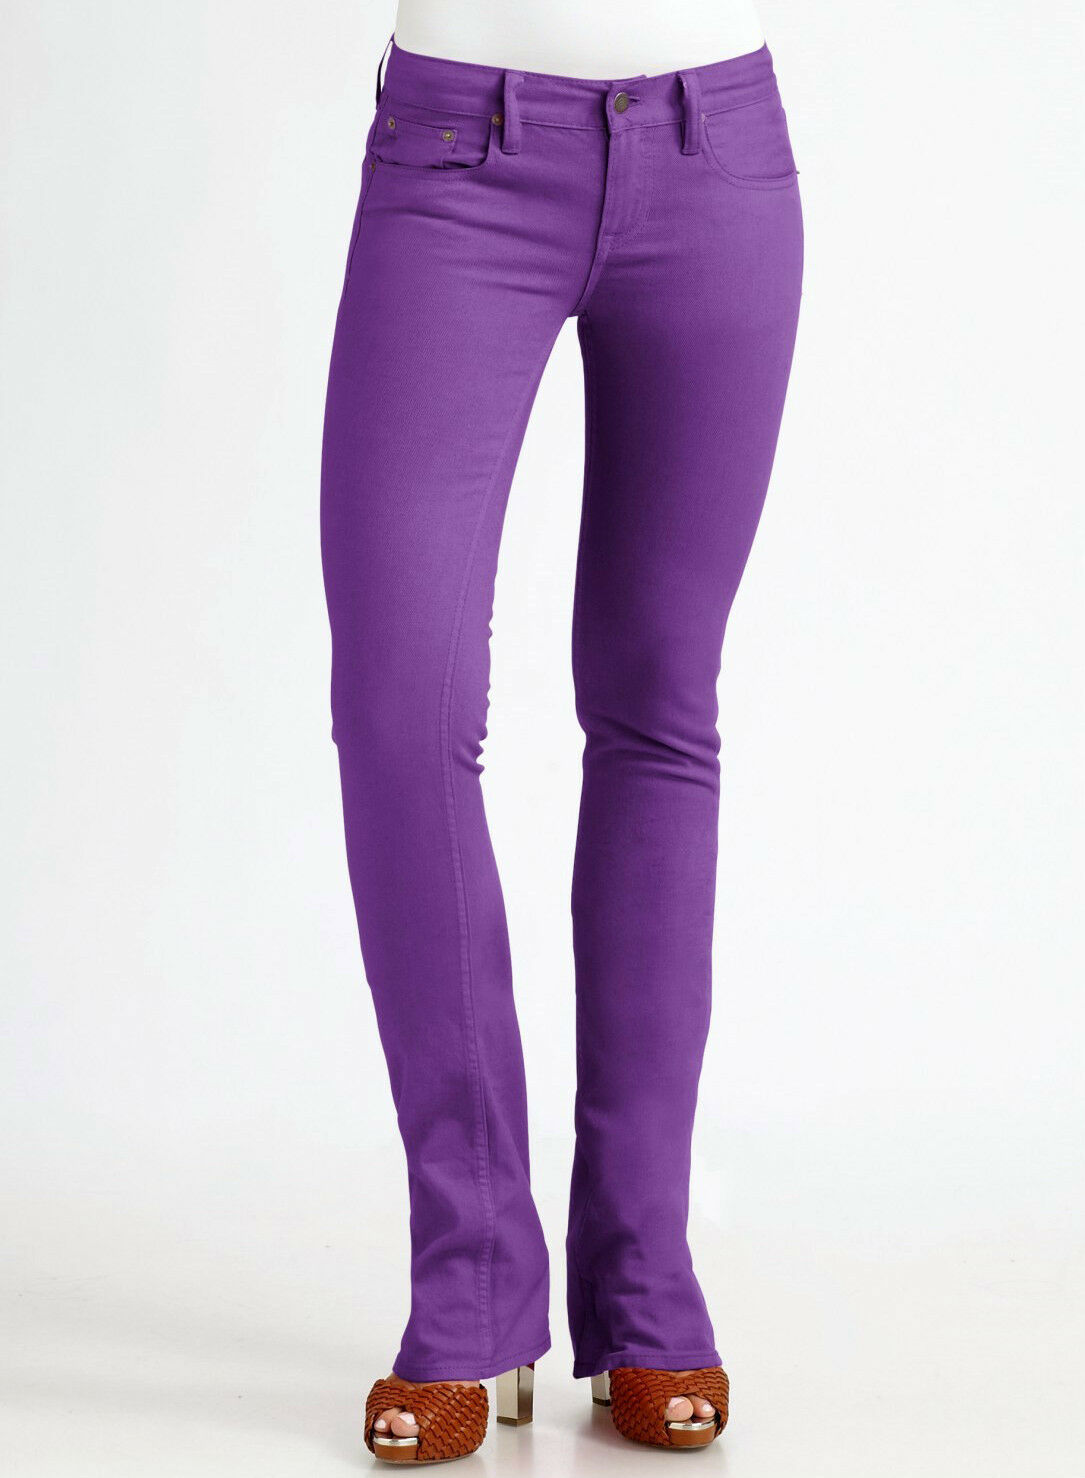 NWT 245 RALPH LAUREN blueE LABEL Womens  Purple Jeans 25 Stretch Slim Bootcut